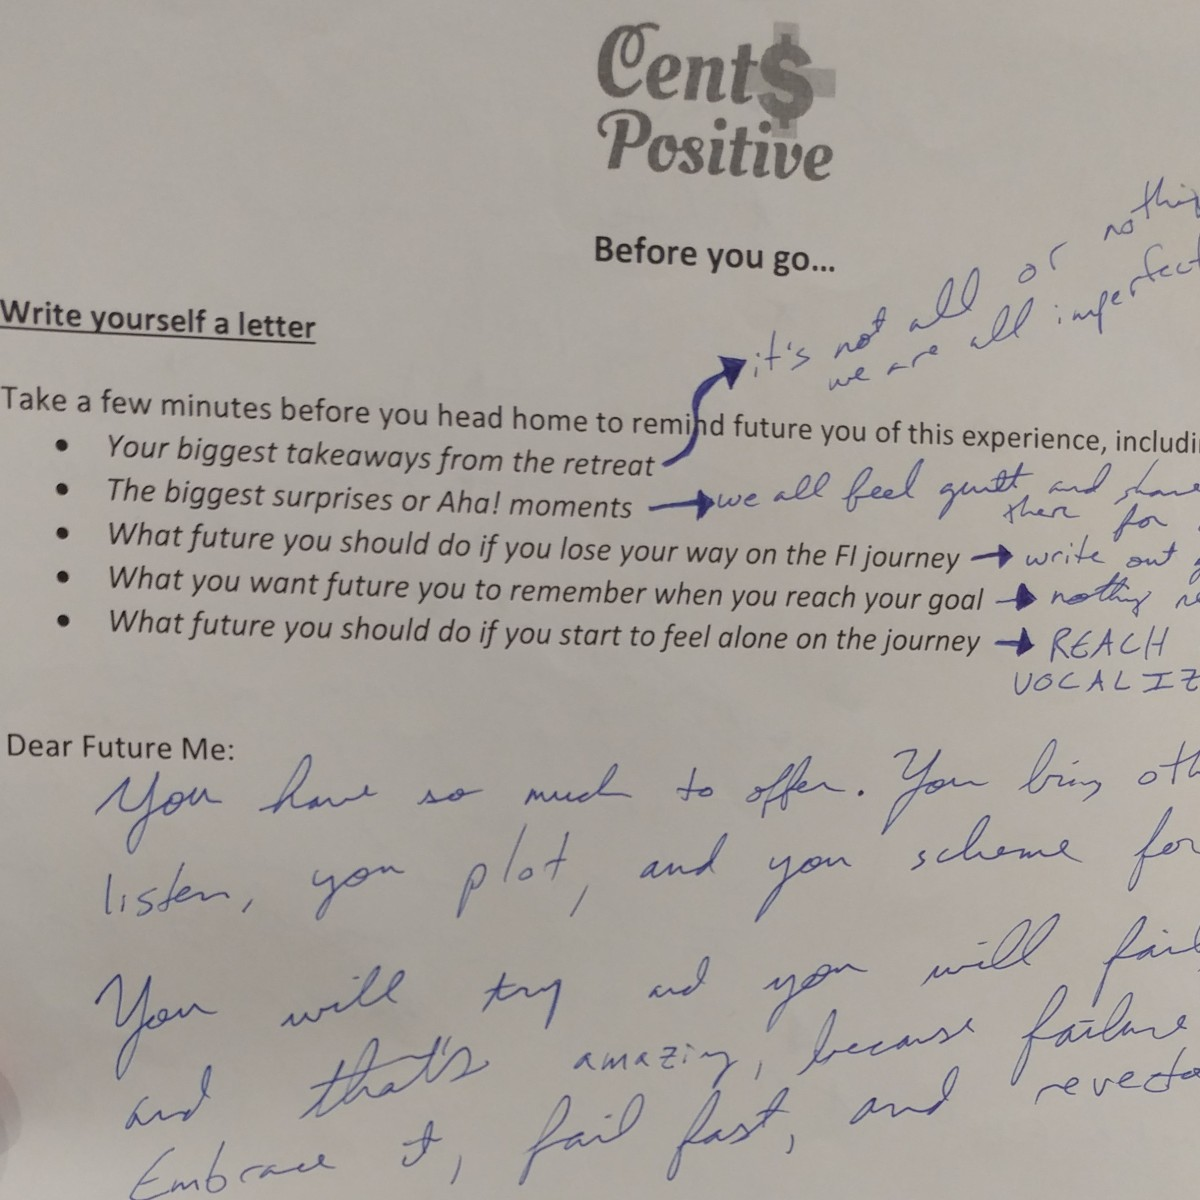 Cents Positive Letter to Future Self